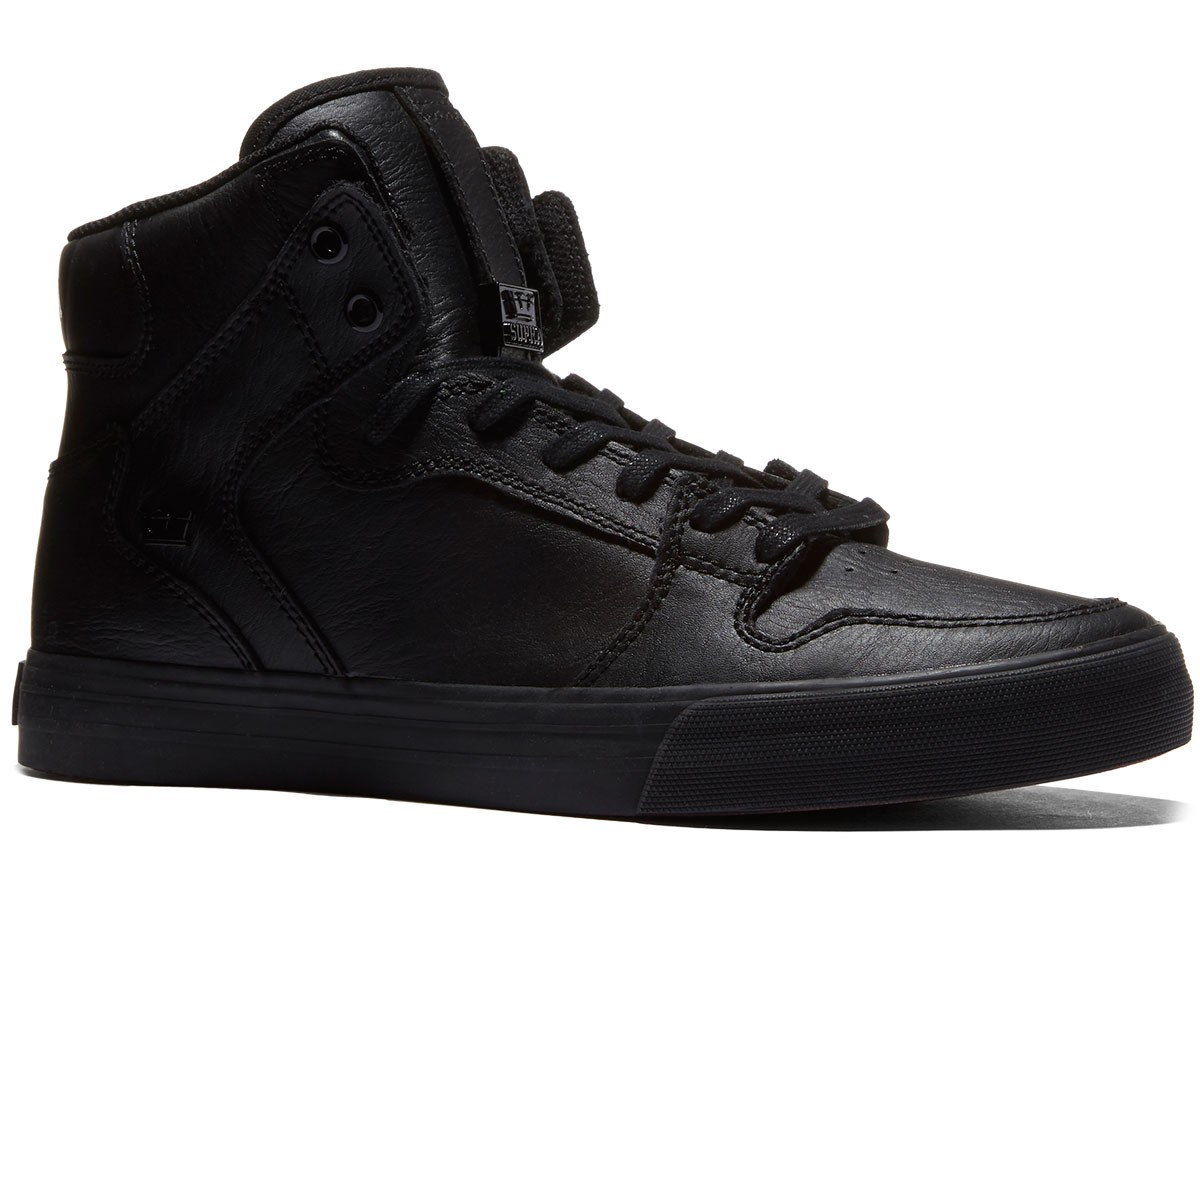 Supra Vaider Shoes - Black Black Red - 8.0 7b5517b2f